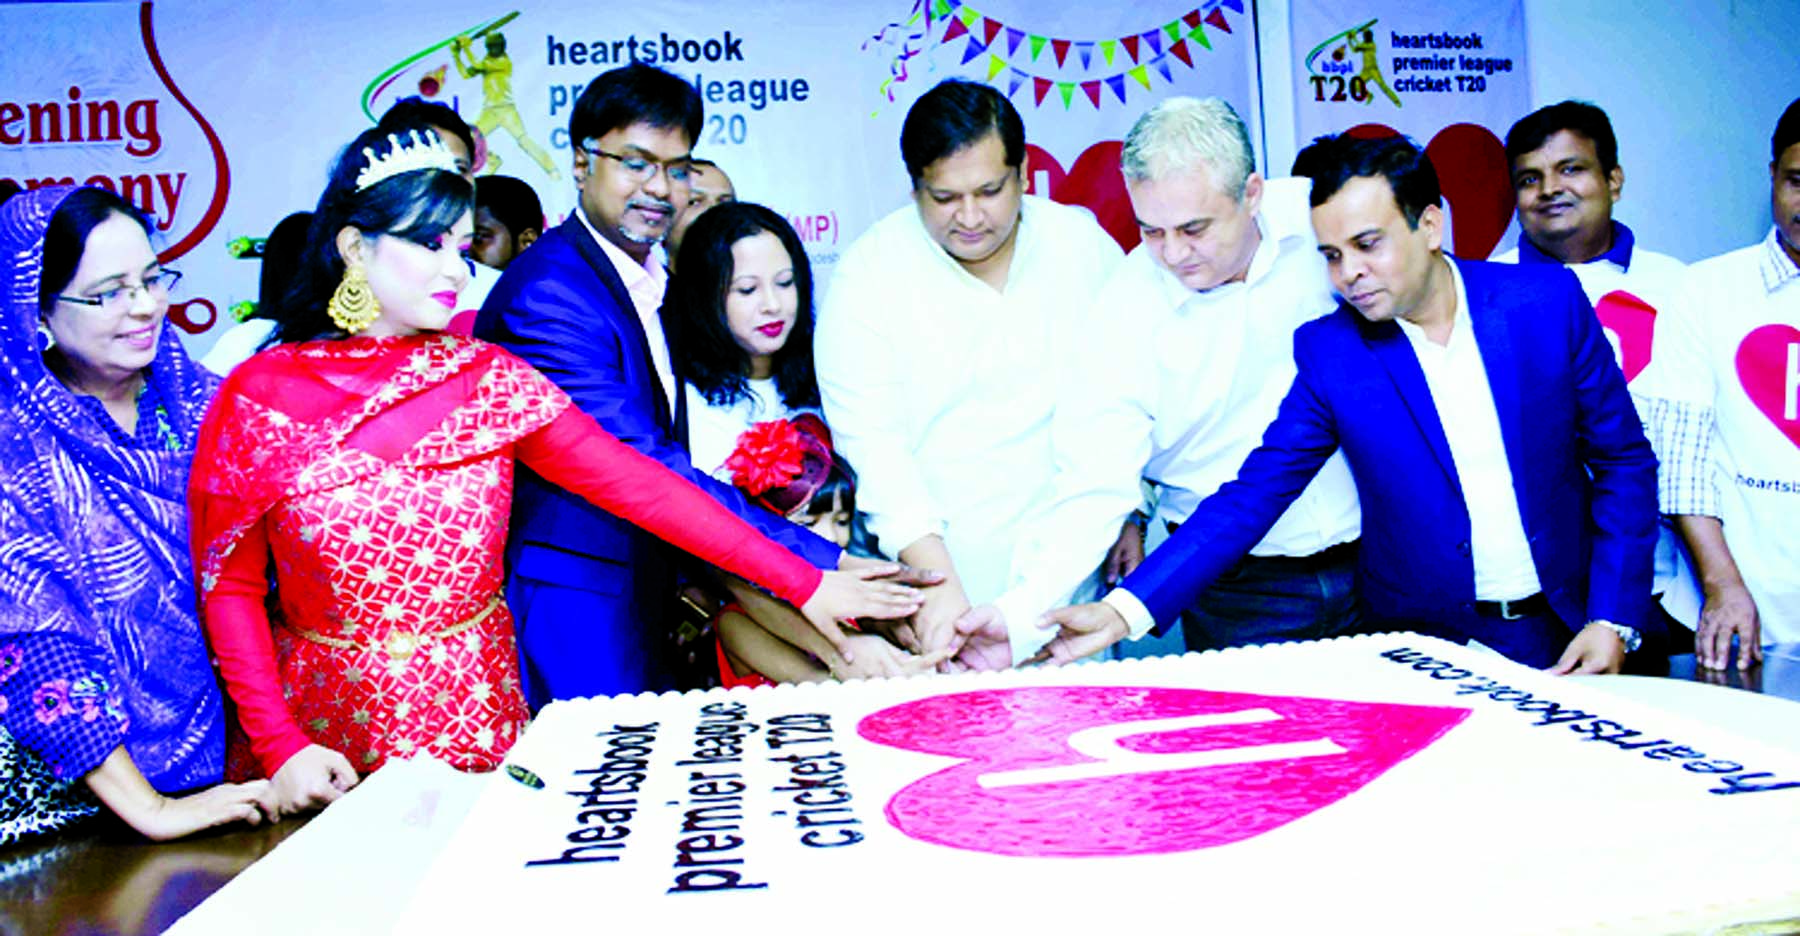 State Minister for Youth and Sports Zahid Ahsan Russell inaugurating the Hearts Book Premier League (HBL) T20 Cricket by cutting a cake as the chief guest at the National Press Club on Tuesday. Hearts Book is a one kind of social media method.